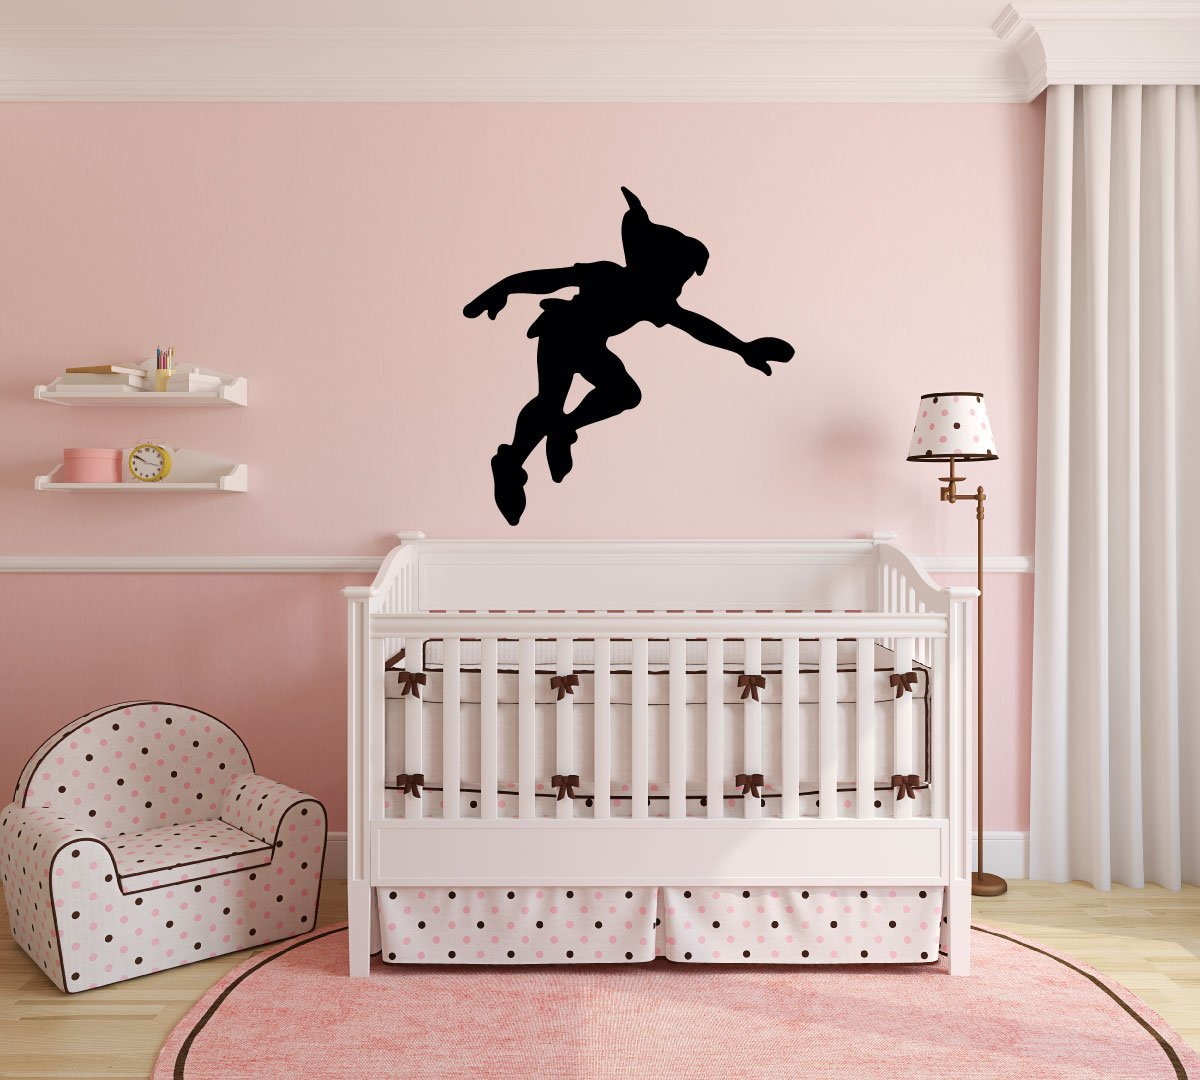 Peter pan wall decal vinyl sticker disney shadow character art silhouette for kids playroom for Disney wall stickers for kids bedrooms